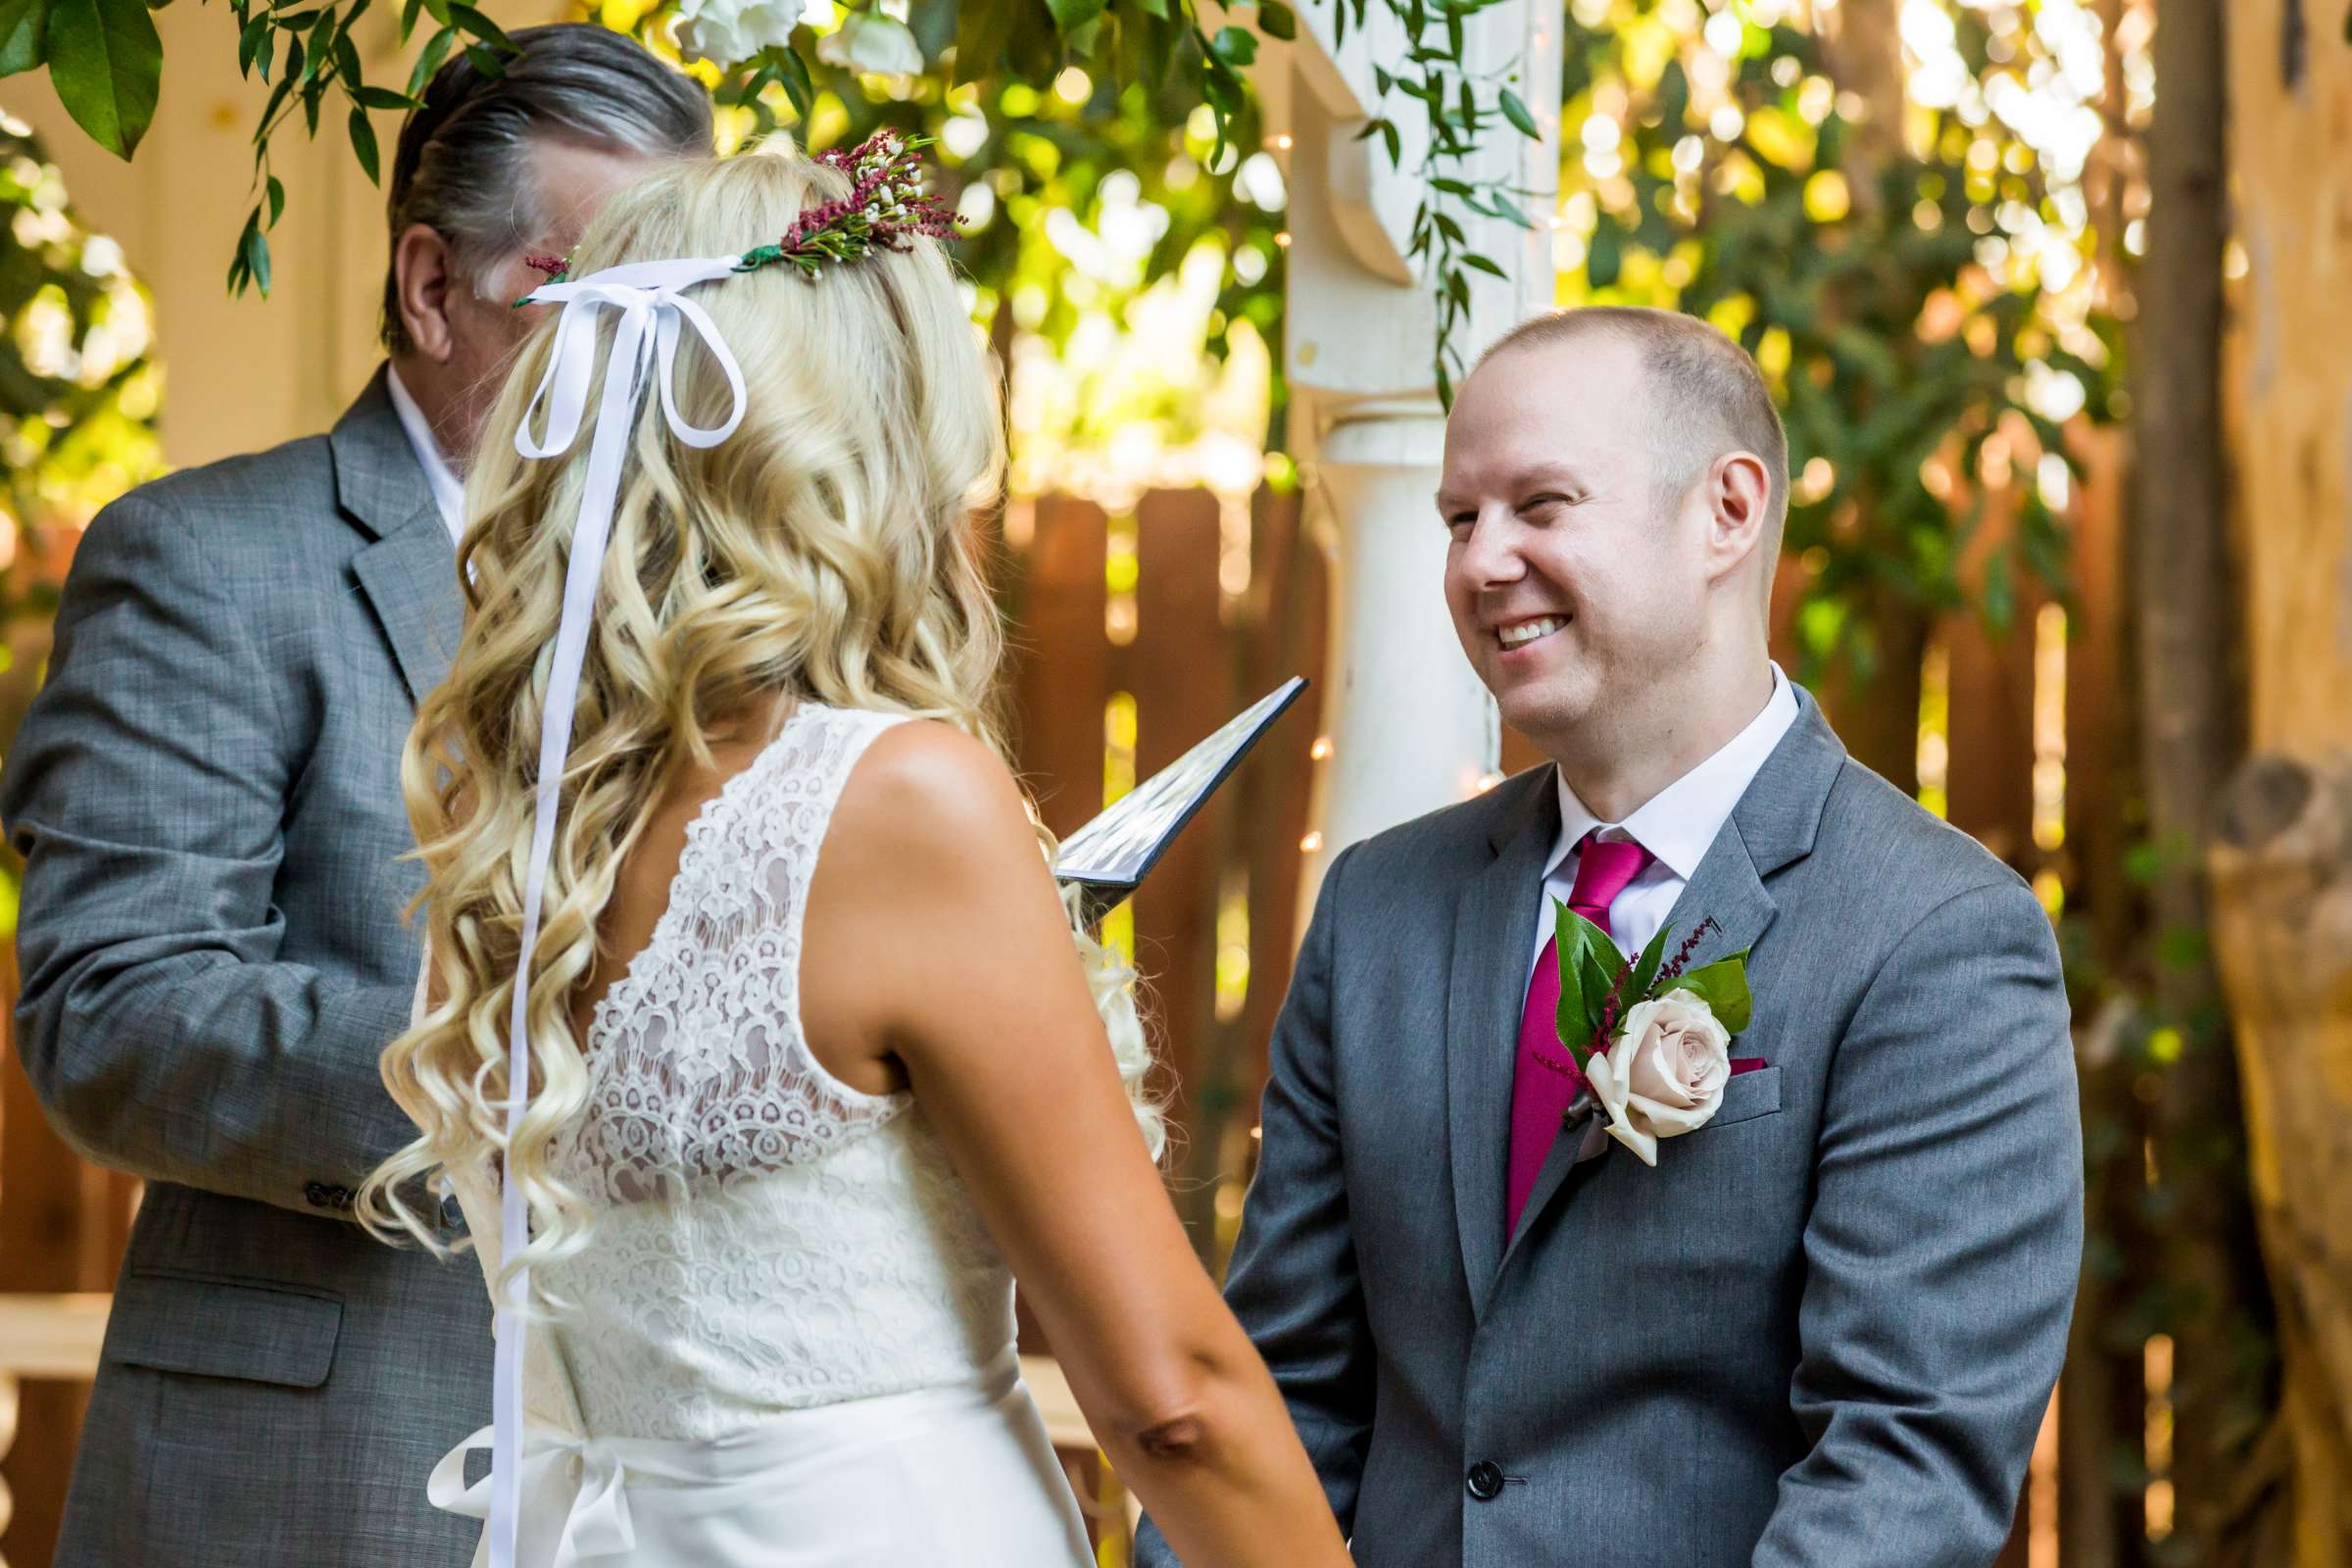 Twin Oaks House & Gardens Wedding Estate Wedding, Brittany and Sean Wedding Photo #85 by True Photography